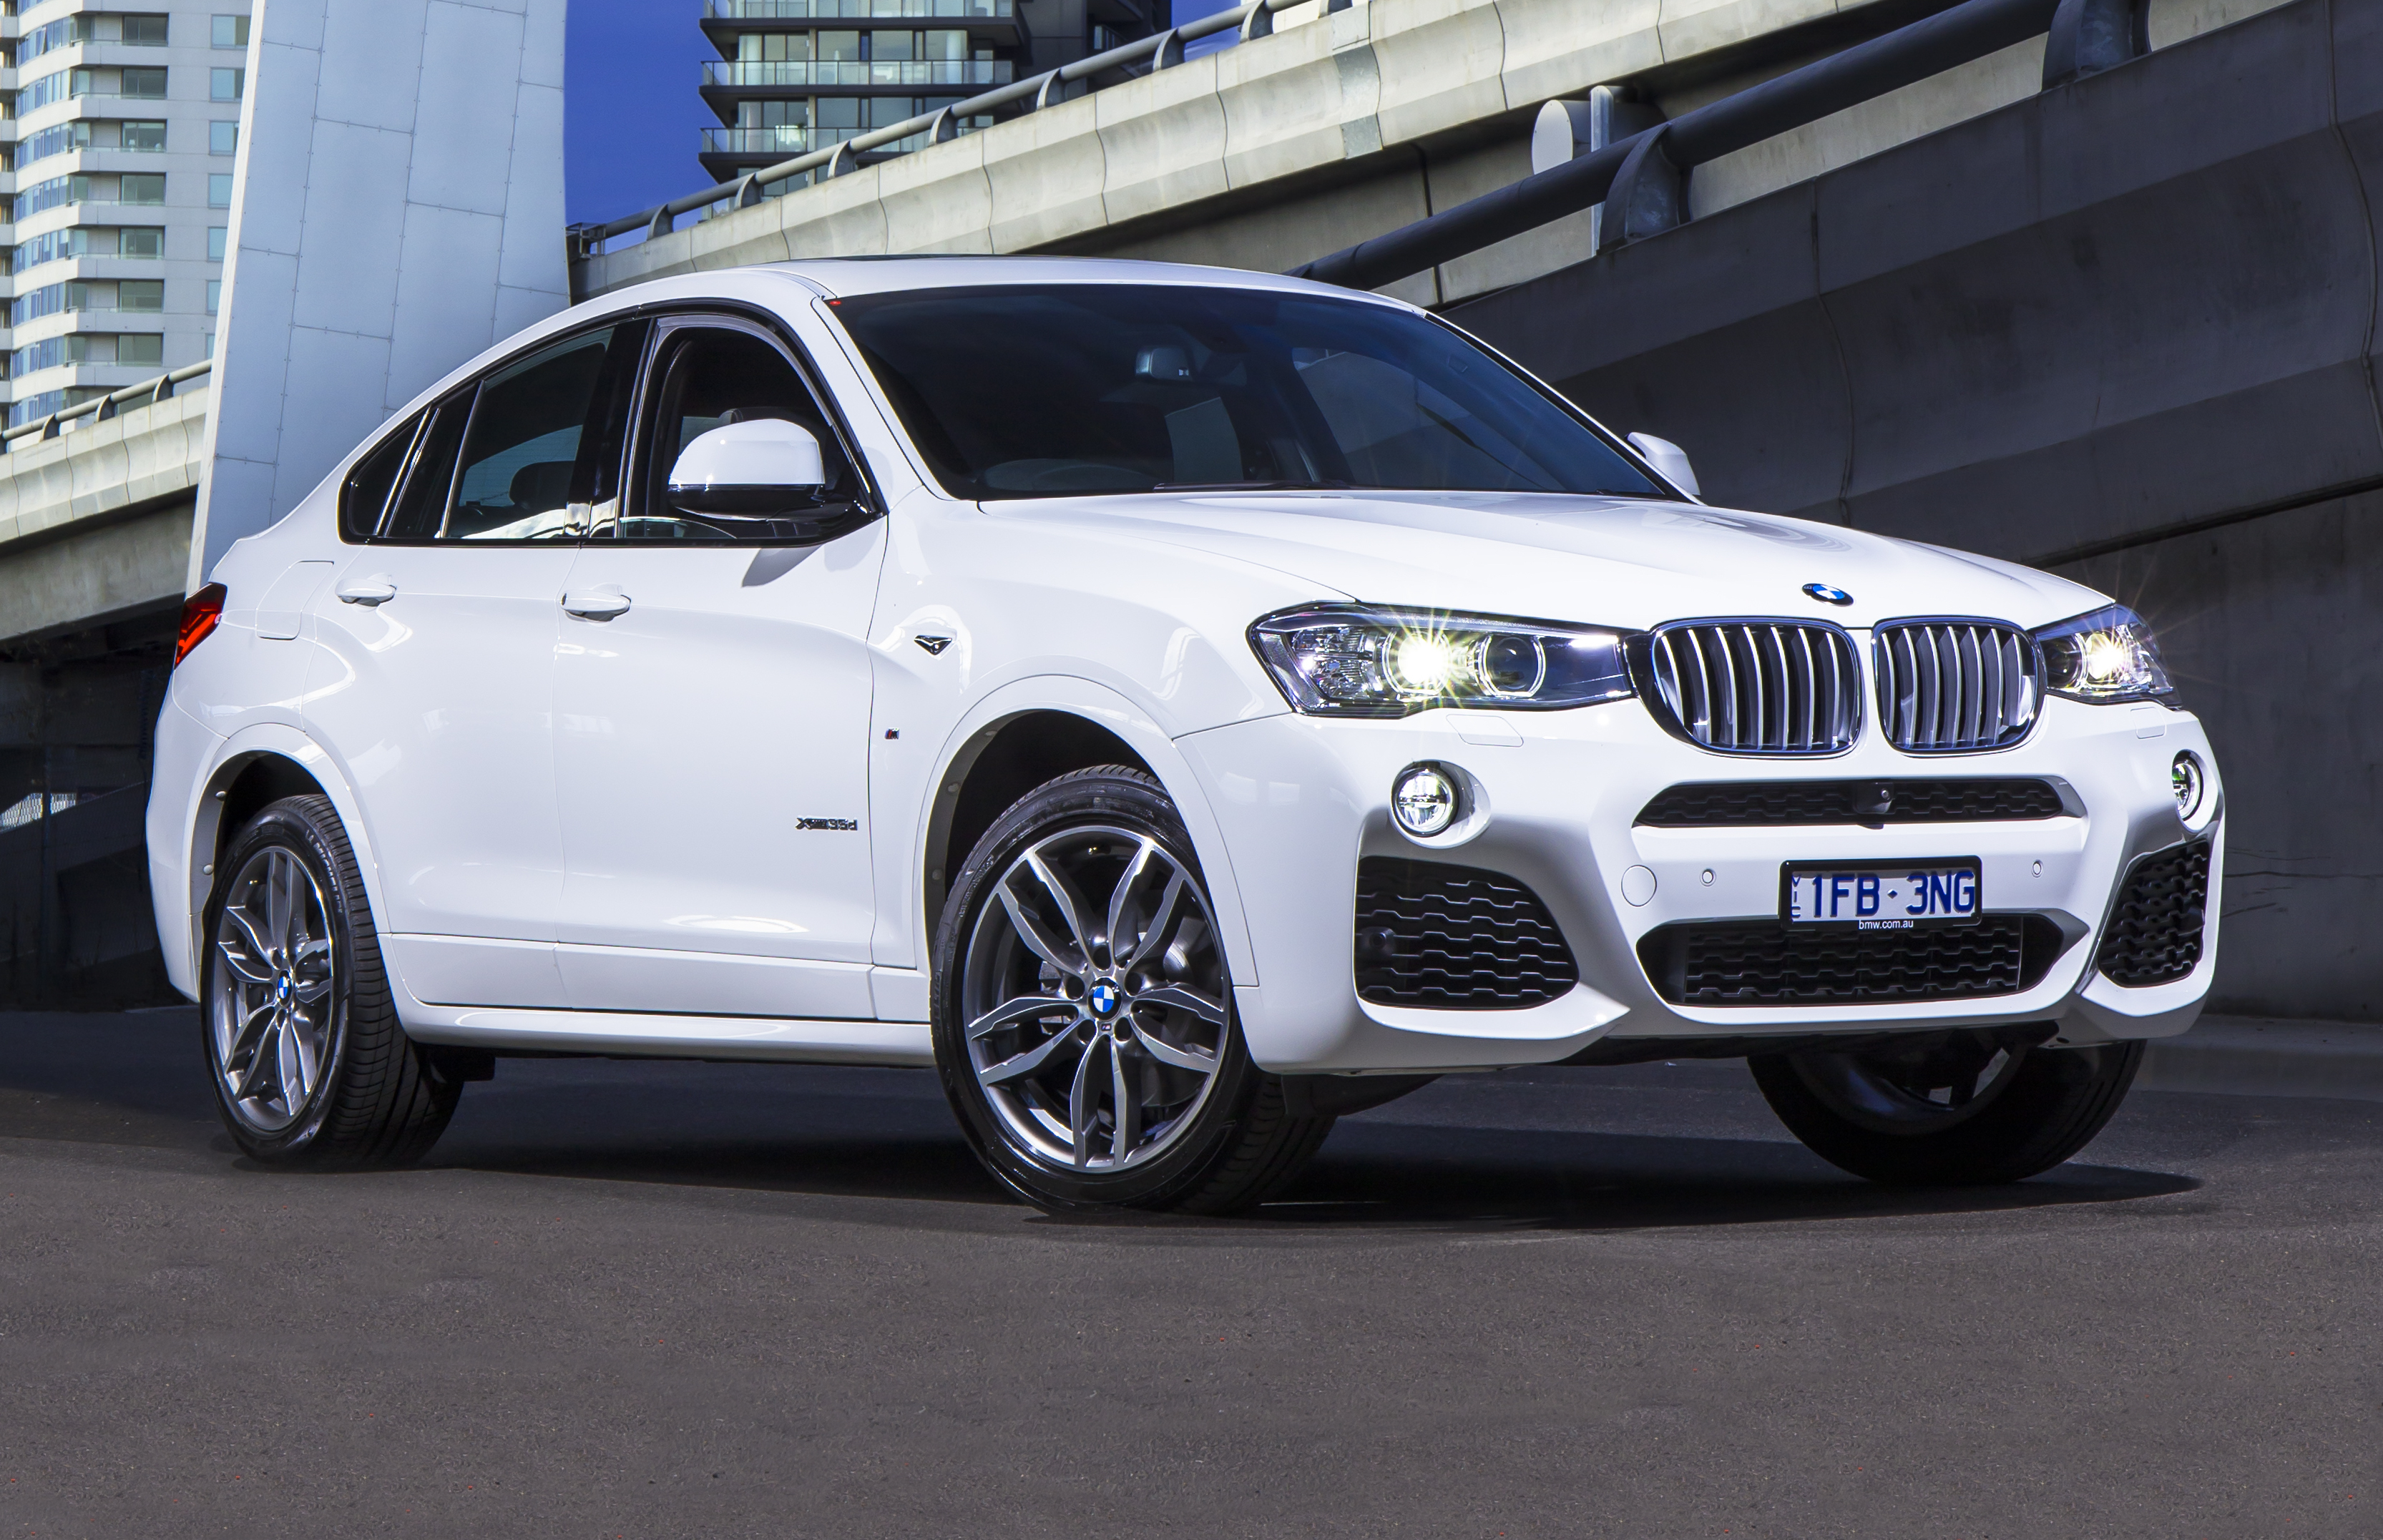 2010 bmw x6 reviews bmw x6 price photos and specs html. Black Bedroom Furniture Sets. Home Design Ideas